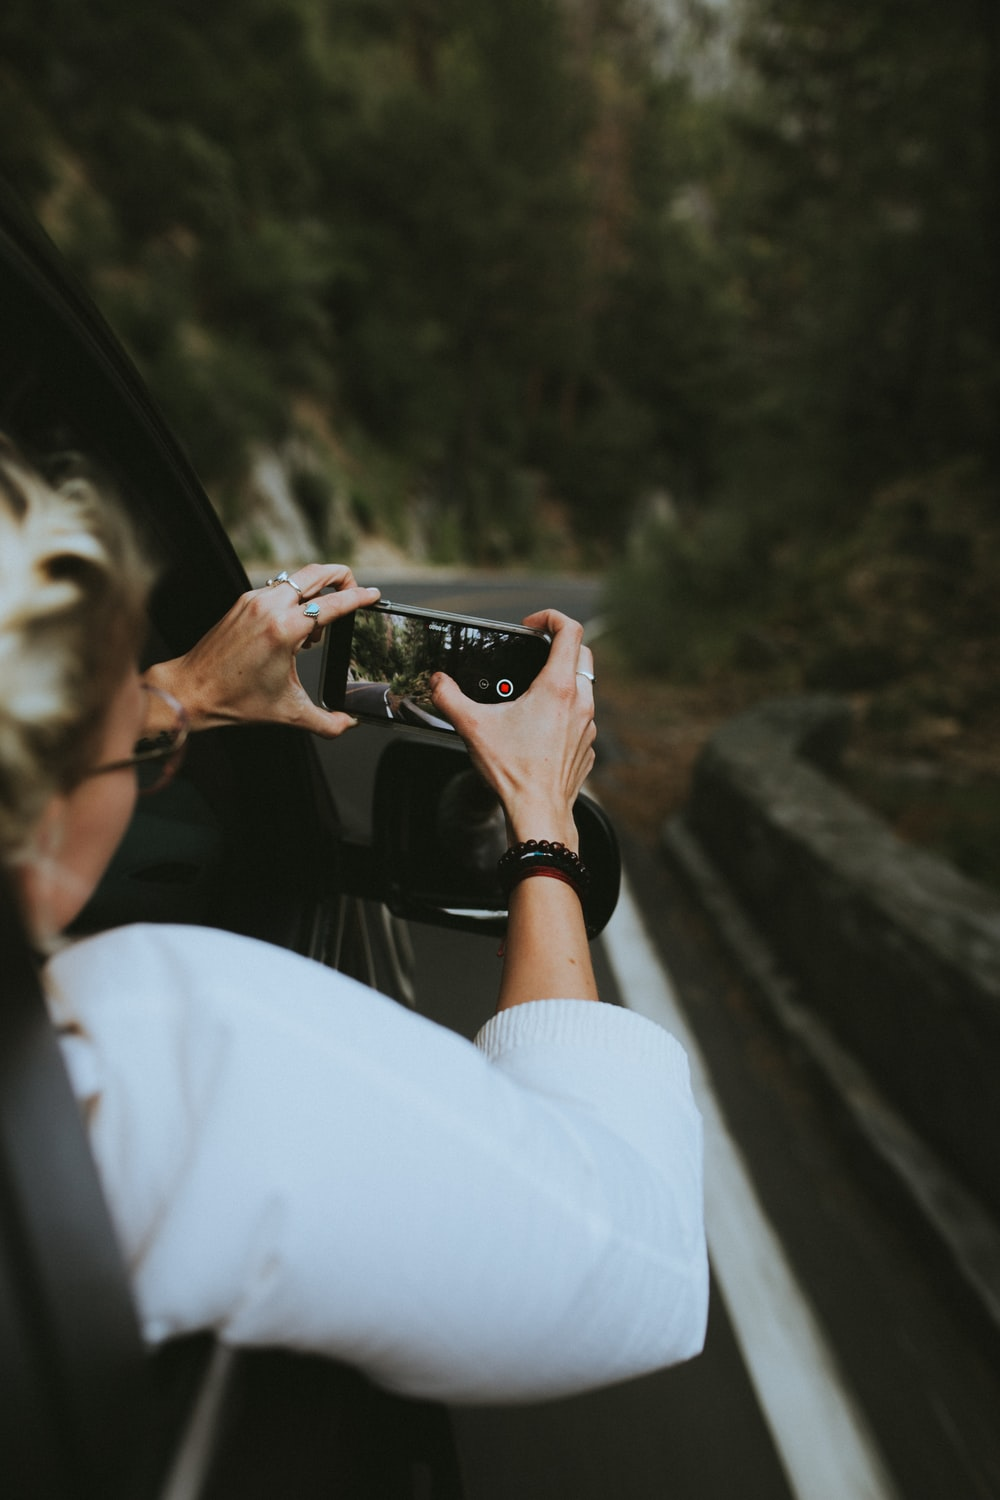 woman riding on the car holding smartphone taking a picture